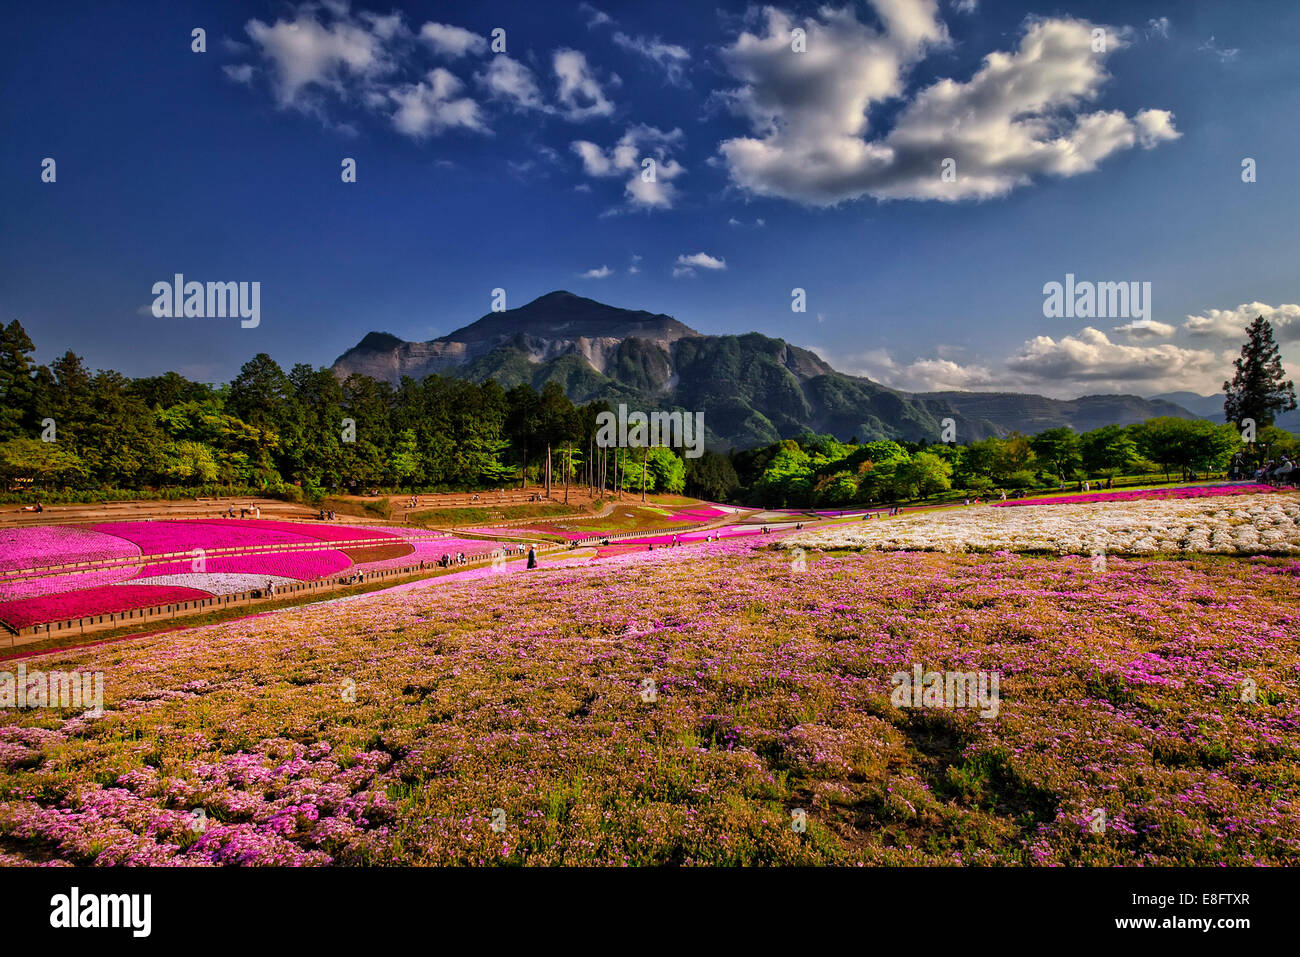 Japan, Saitama prefecture, Chichibu park, View of shibazakura - Stock Image